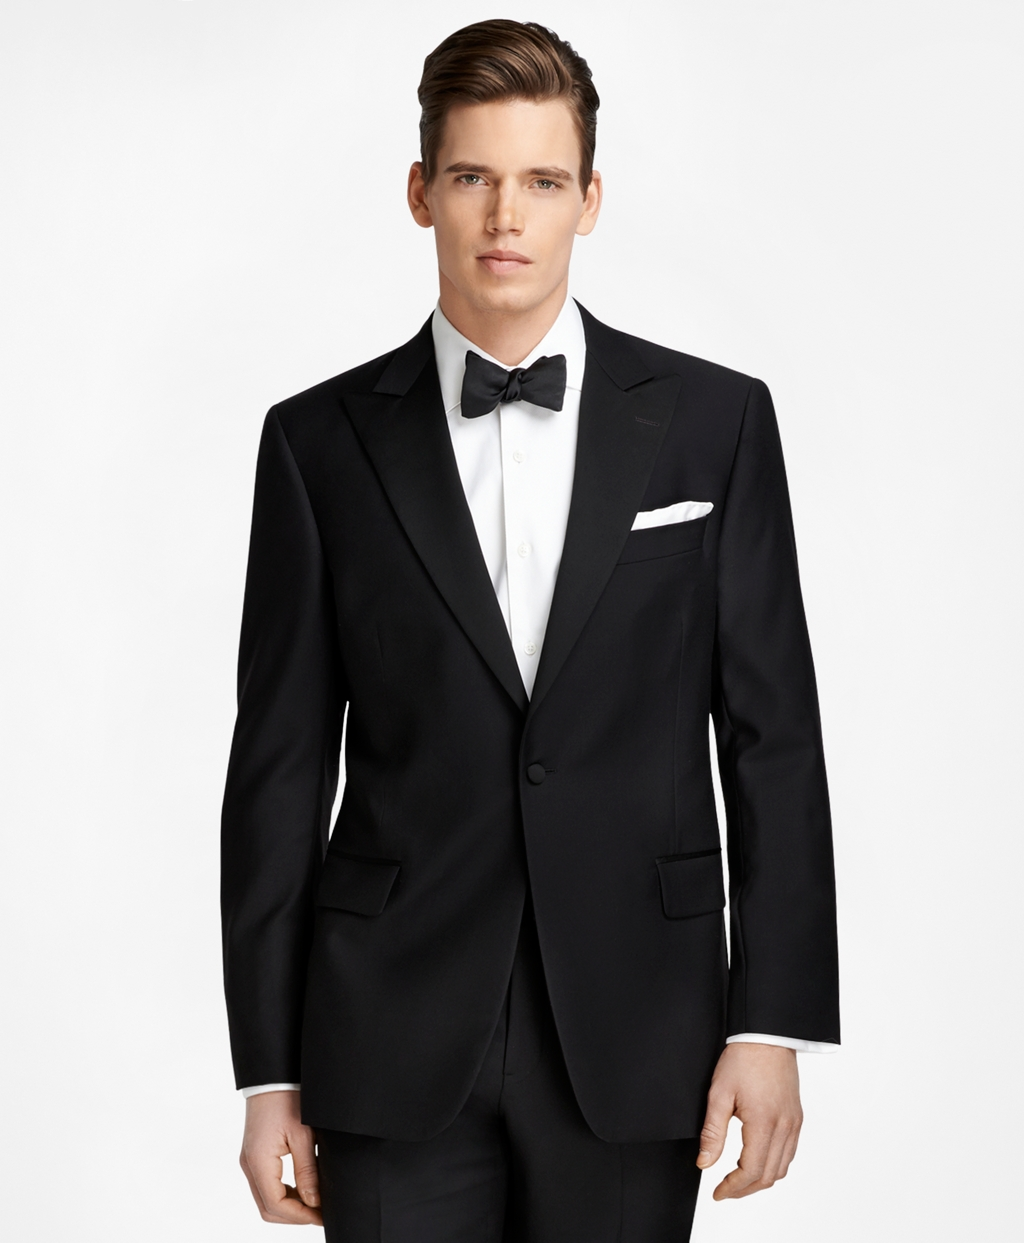 Men\'s Tuxedos & Men\'s Formal Wear | Brooks Brothers